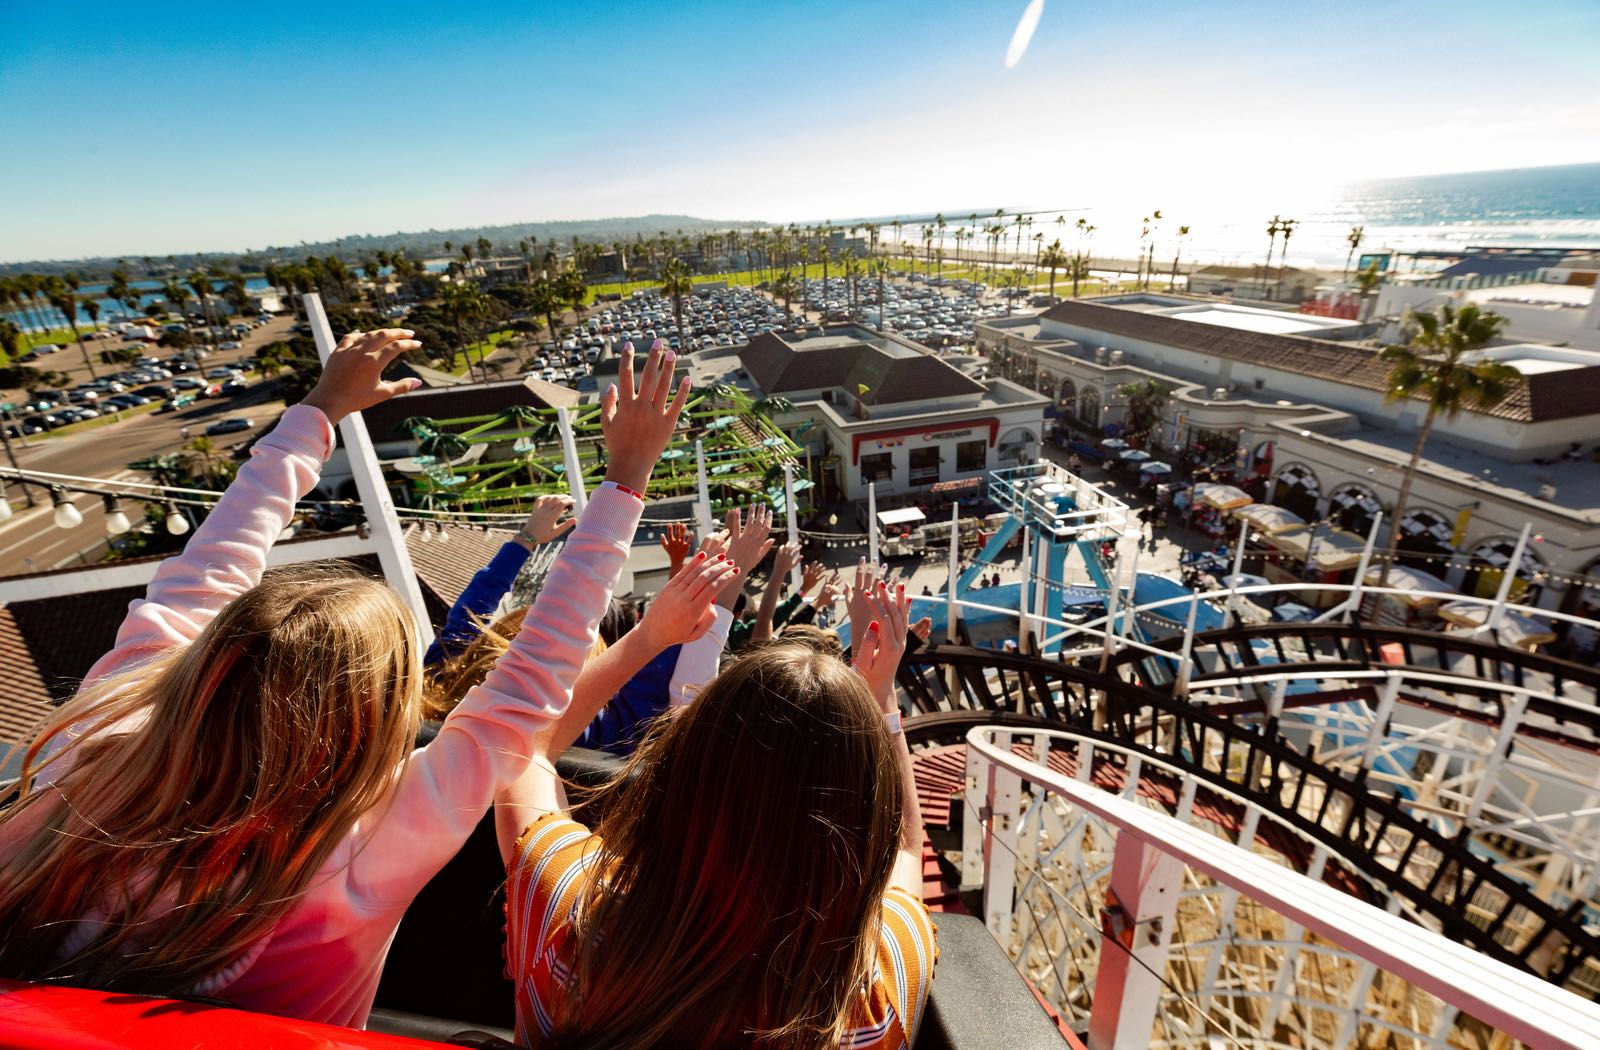 Giant Dipper Roller Coaster overlooking Mission Beach at Belmont Park